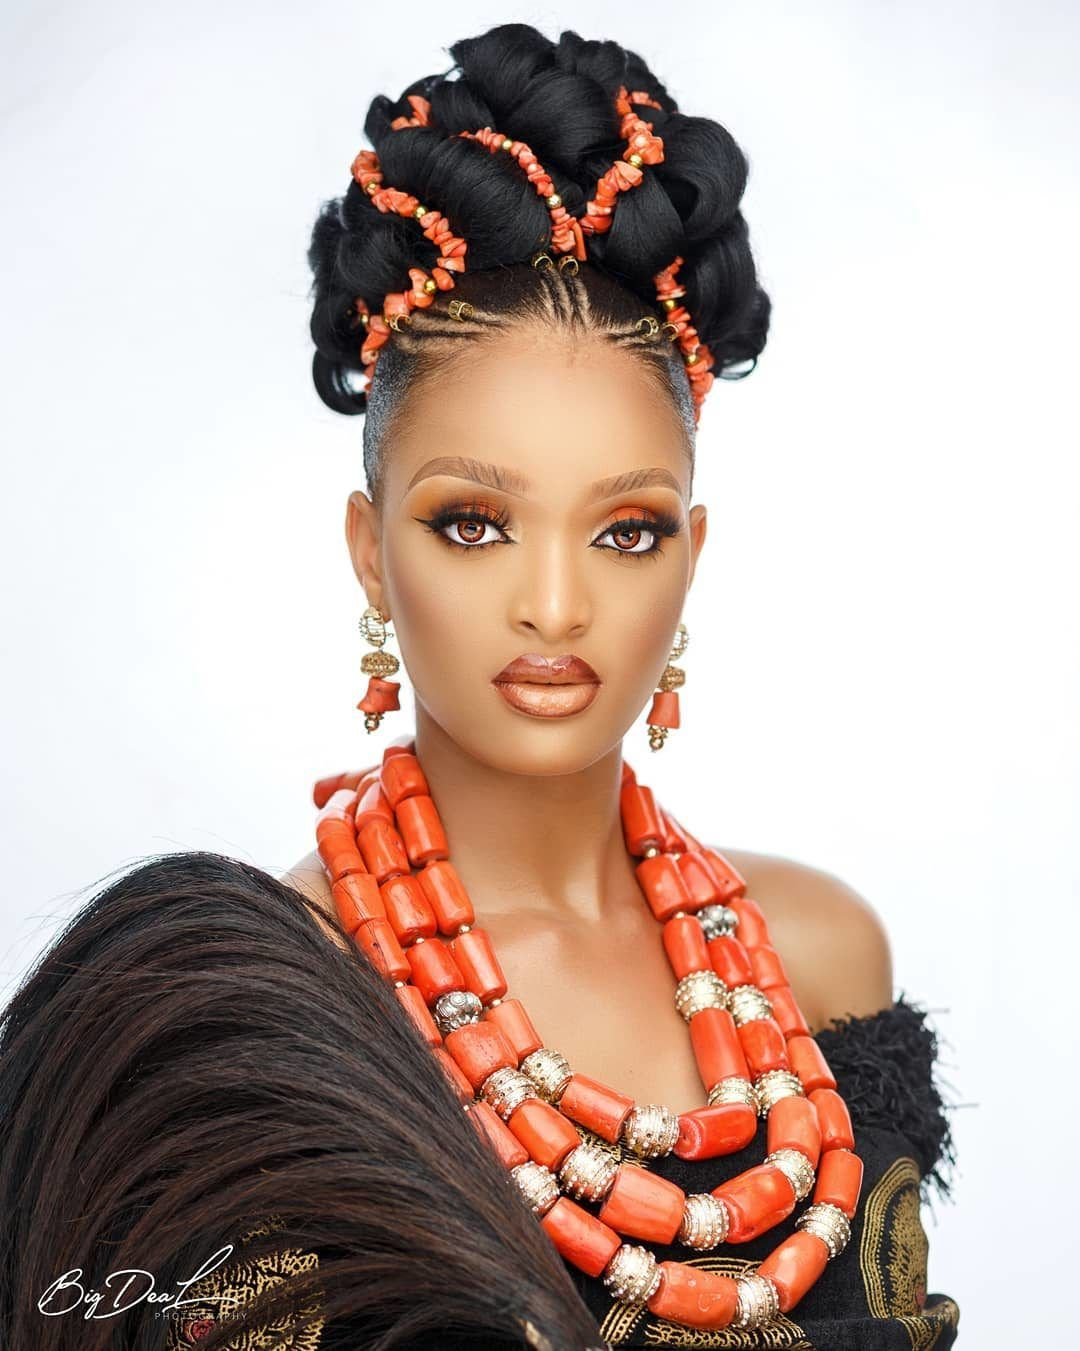 You Ll So Love This Stunning Igbo Traditional Wedding Beauty Look African Wedding Hairstyles Igbo Traditional Wedding African Wedding Attire